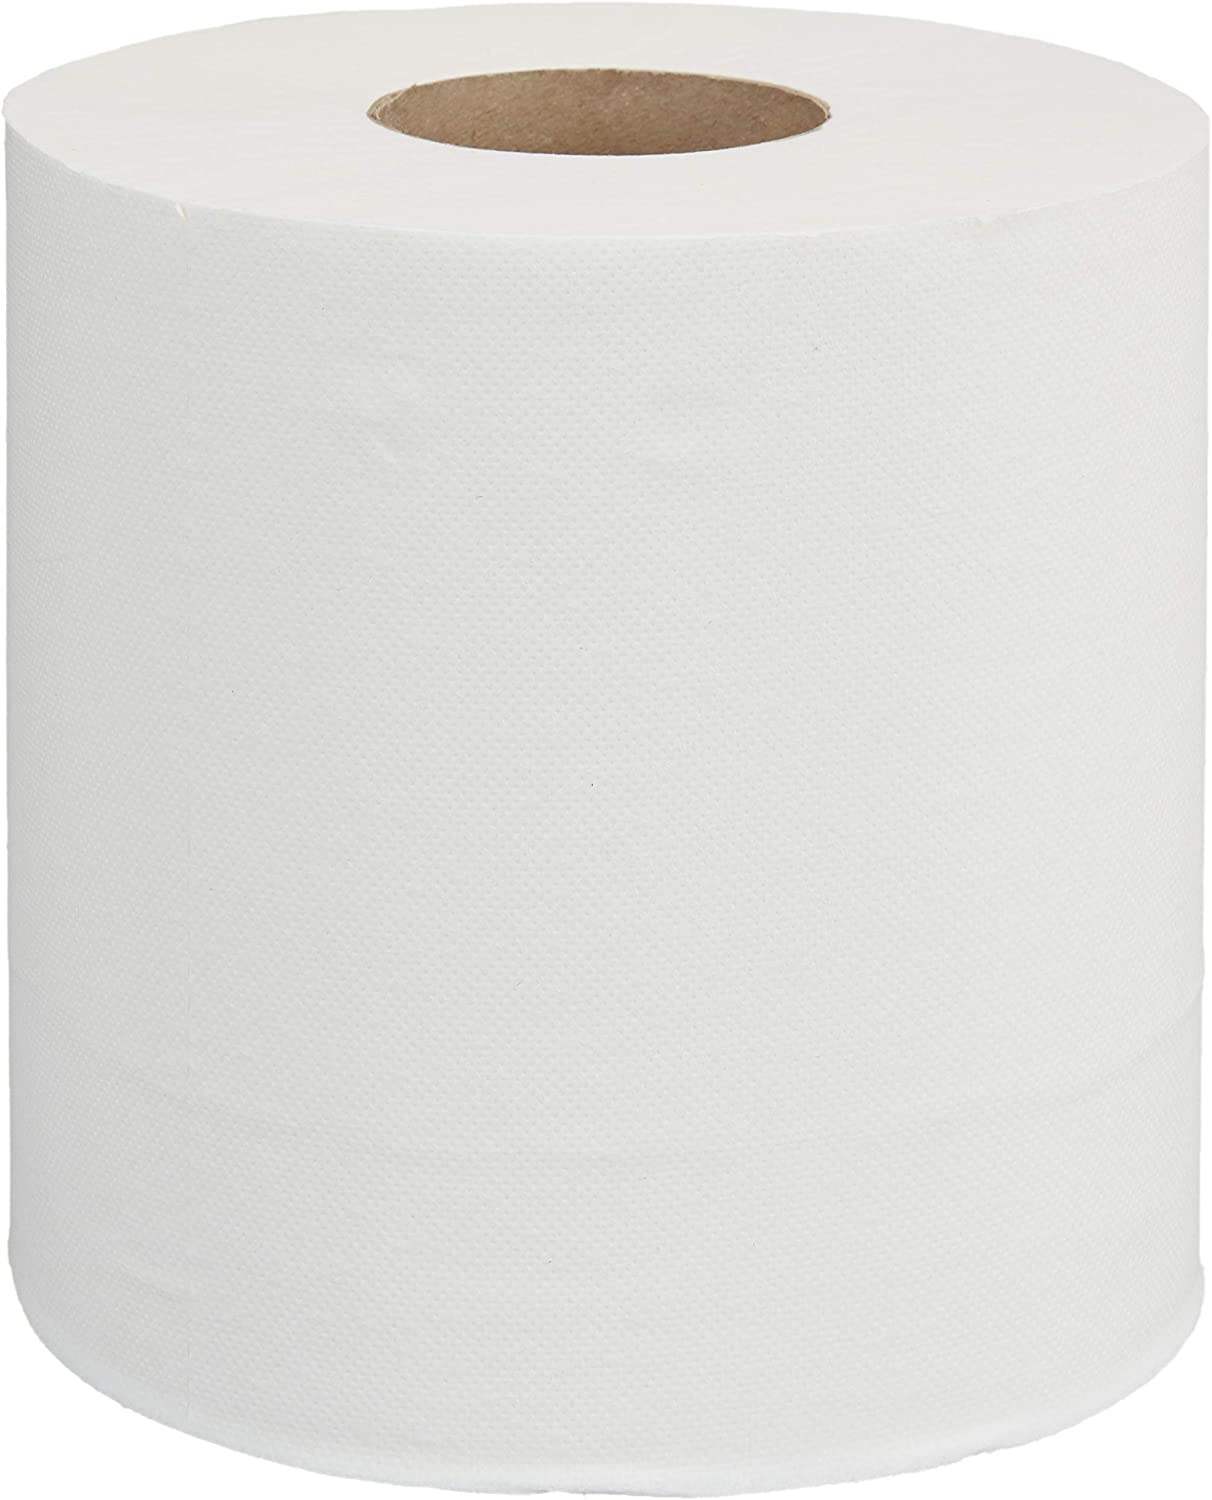 AmazonCommercial Ultra Plus Center Pull Towels, 600 Towels per Roll, 6 Rolls